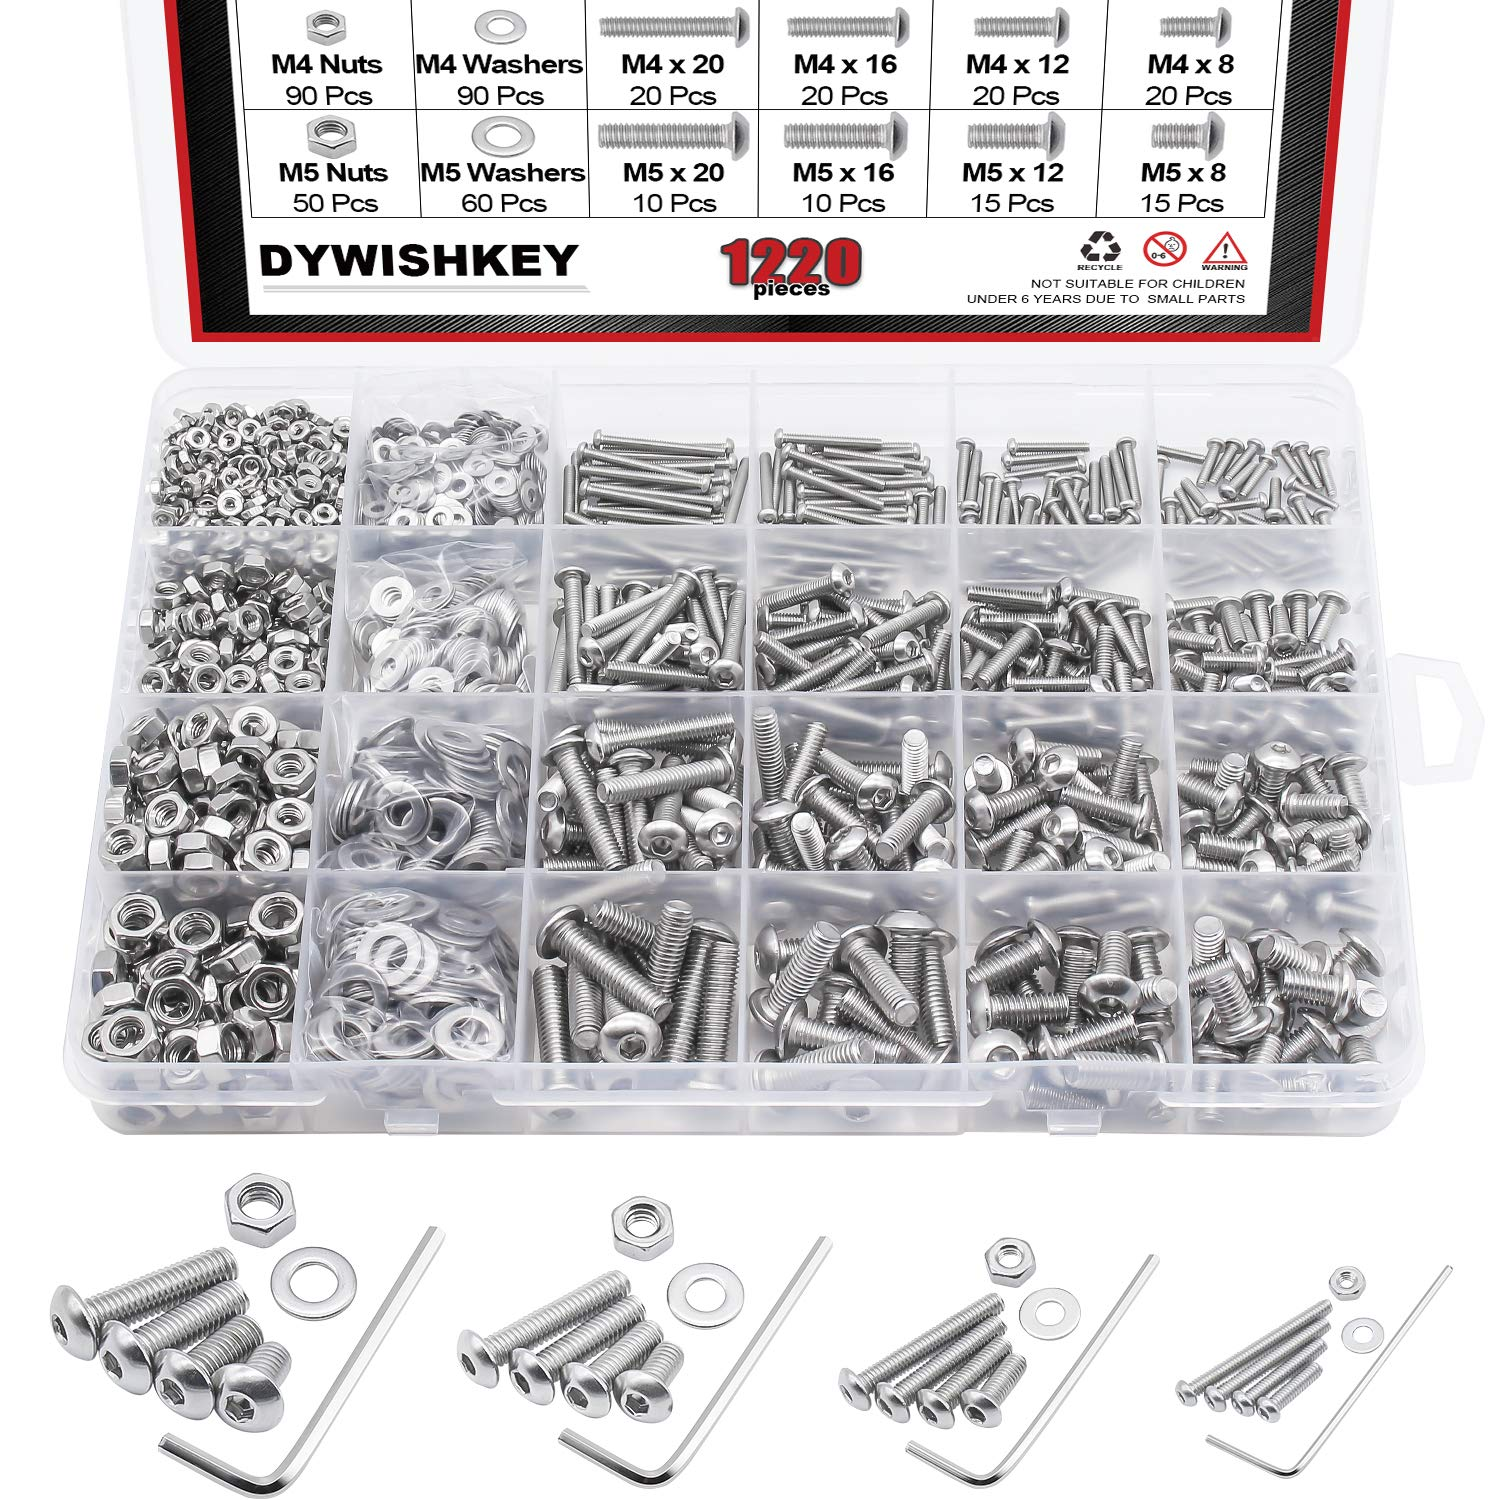 DYWISHKEY 1220 PCS M2 M3 M4 M5, 304 Stainless Steel Hex Button Head Cap Bolts Screws Nuts Washers Assortment Kit with Hex Wrenches by DYWISHKEY